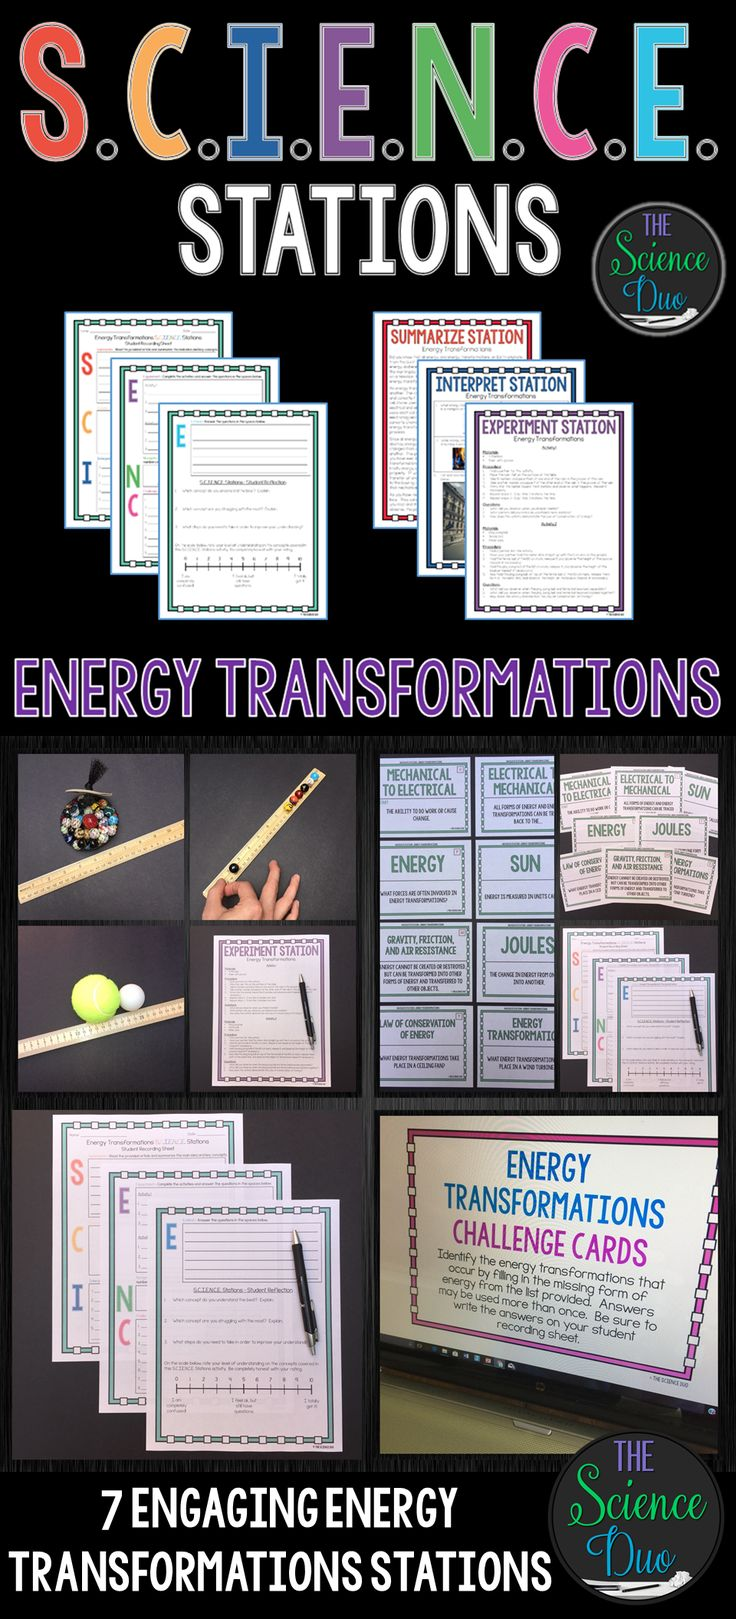 This Energy Transformations S.C.I.E.N.C.E. Station activity is designed to get your students engaged, collaborating, and moving in your daily lesson. Each station provides a different method for reinforcing important science content.